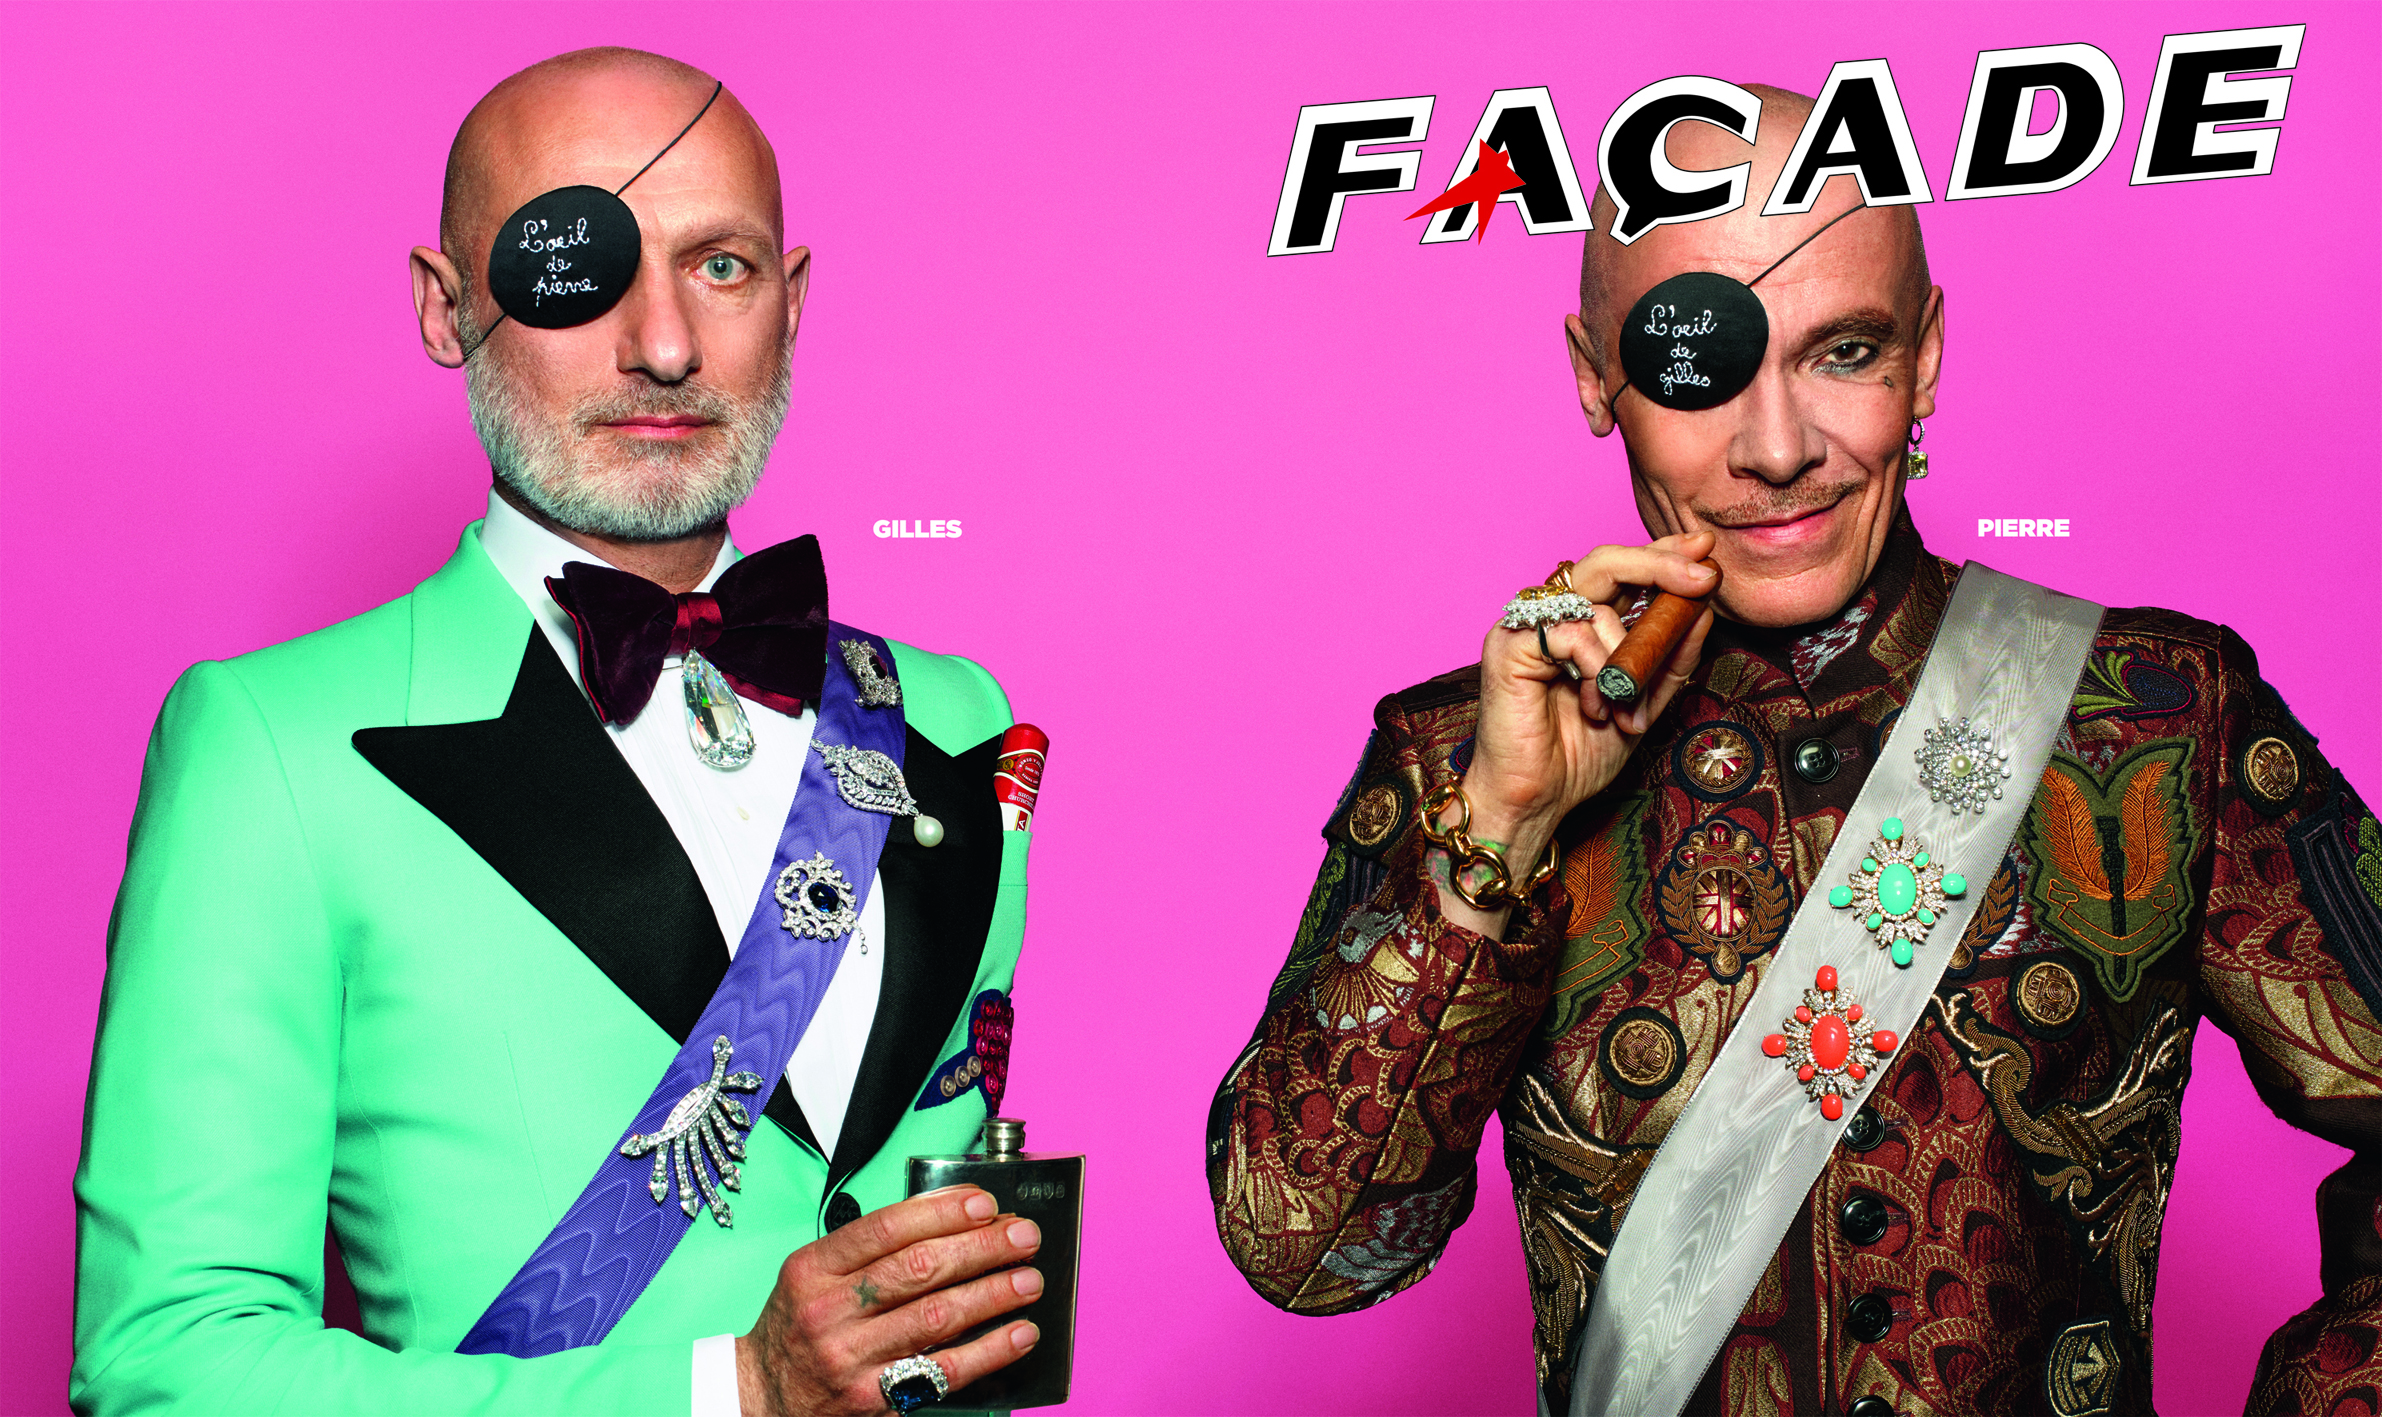 Facade 40th anniversary cover with Pierre et Gilles